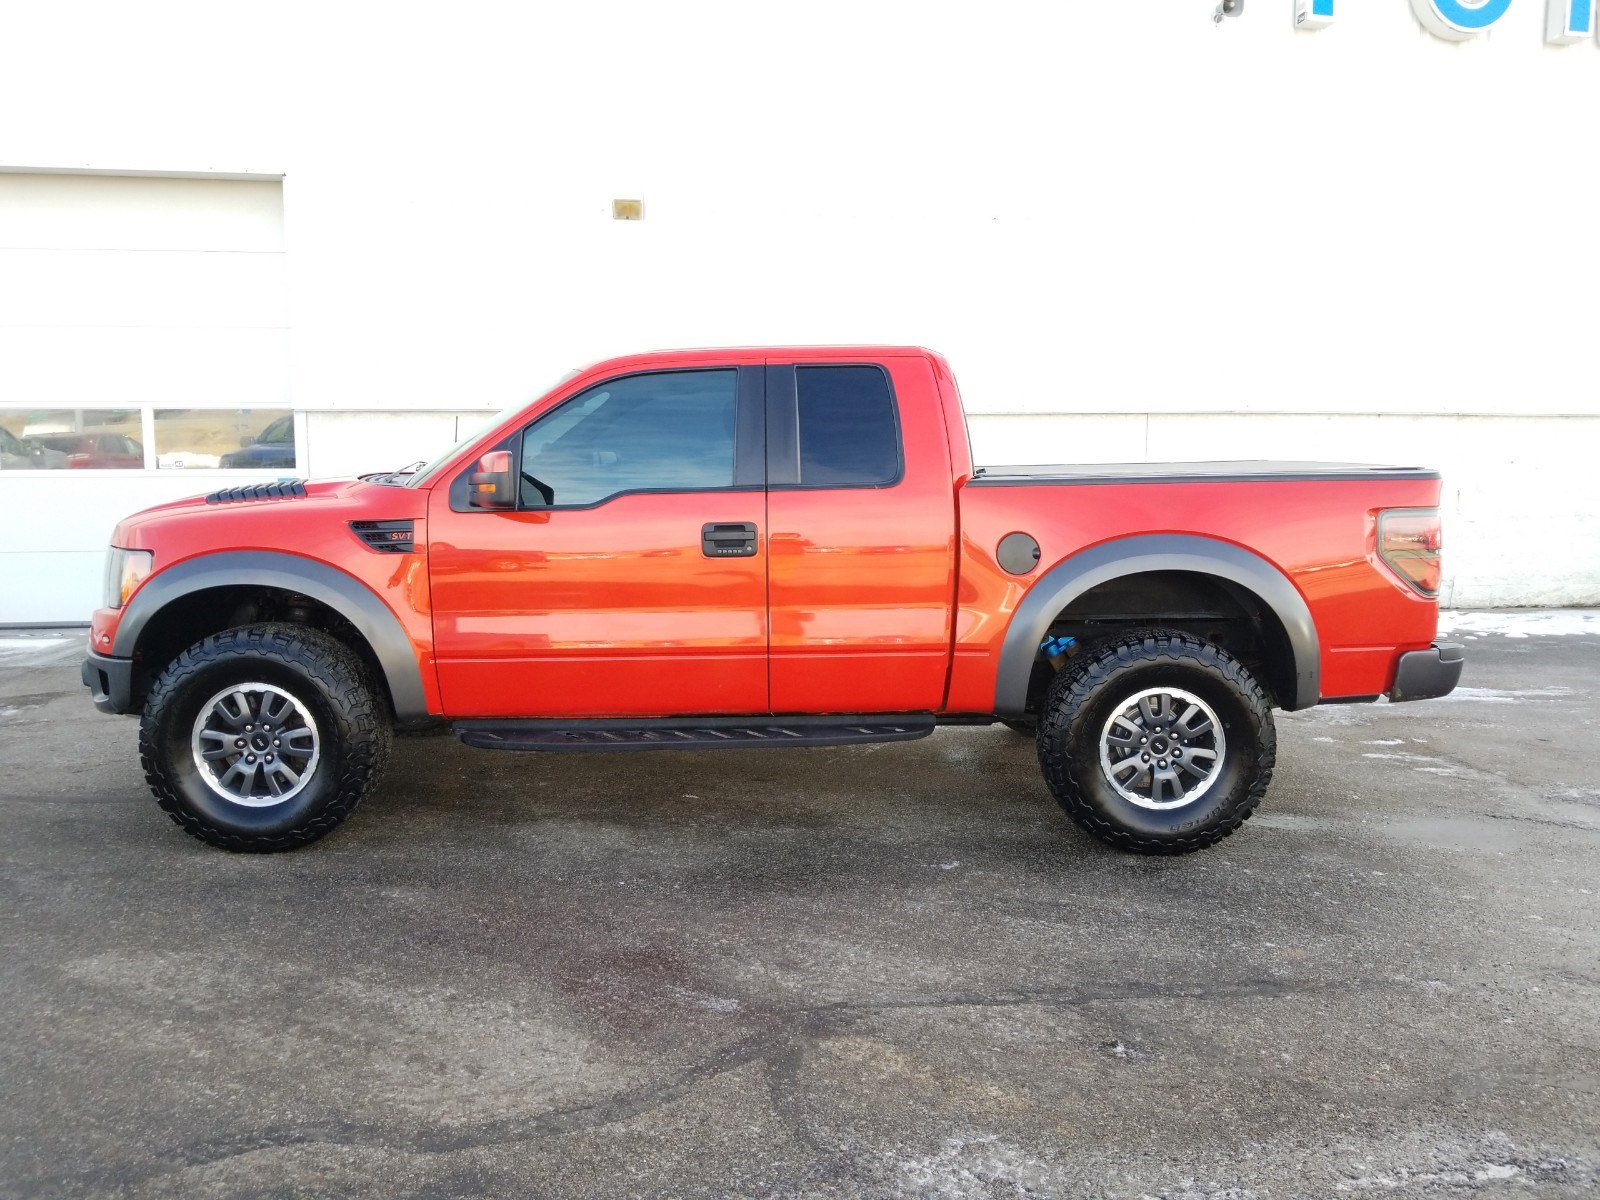 Used 2010 Ford F-150 SVT Raptor Extended Cab Pickup for sale in Lincoln NE